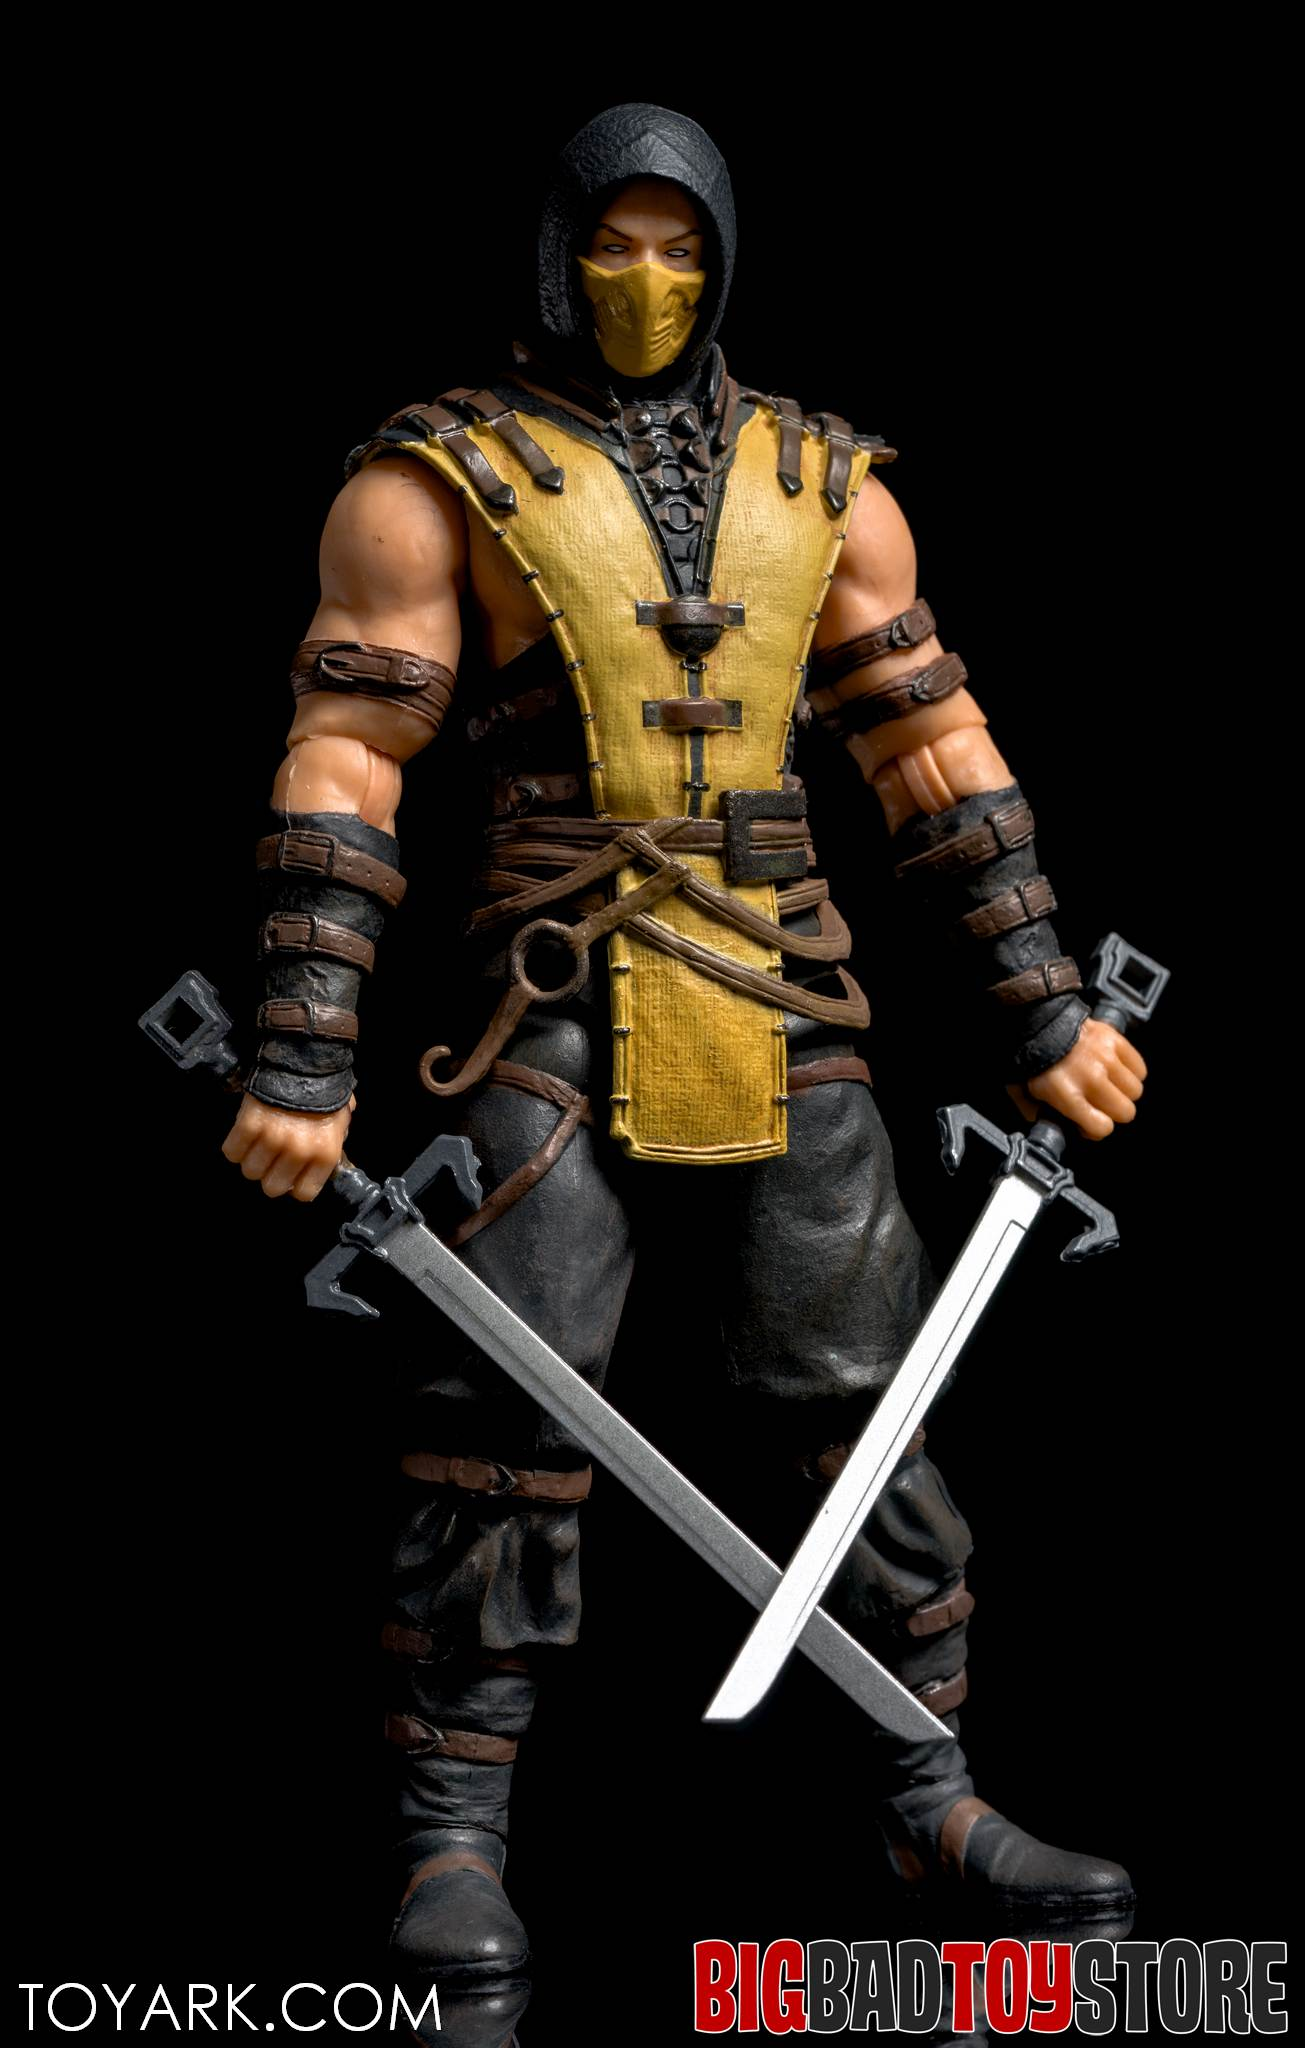 Mezco Mortal Kombat X Scorpion Photo Shoot The Toyark News